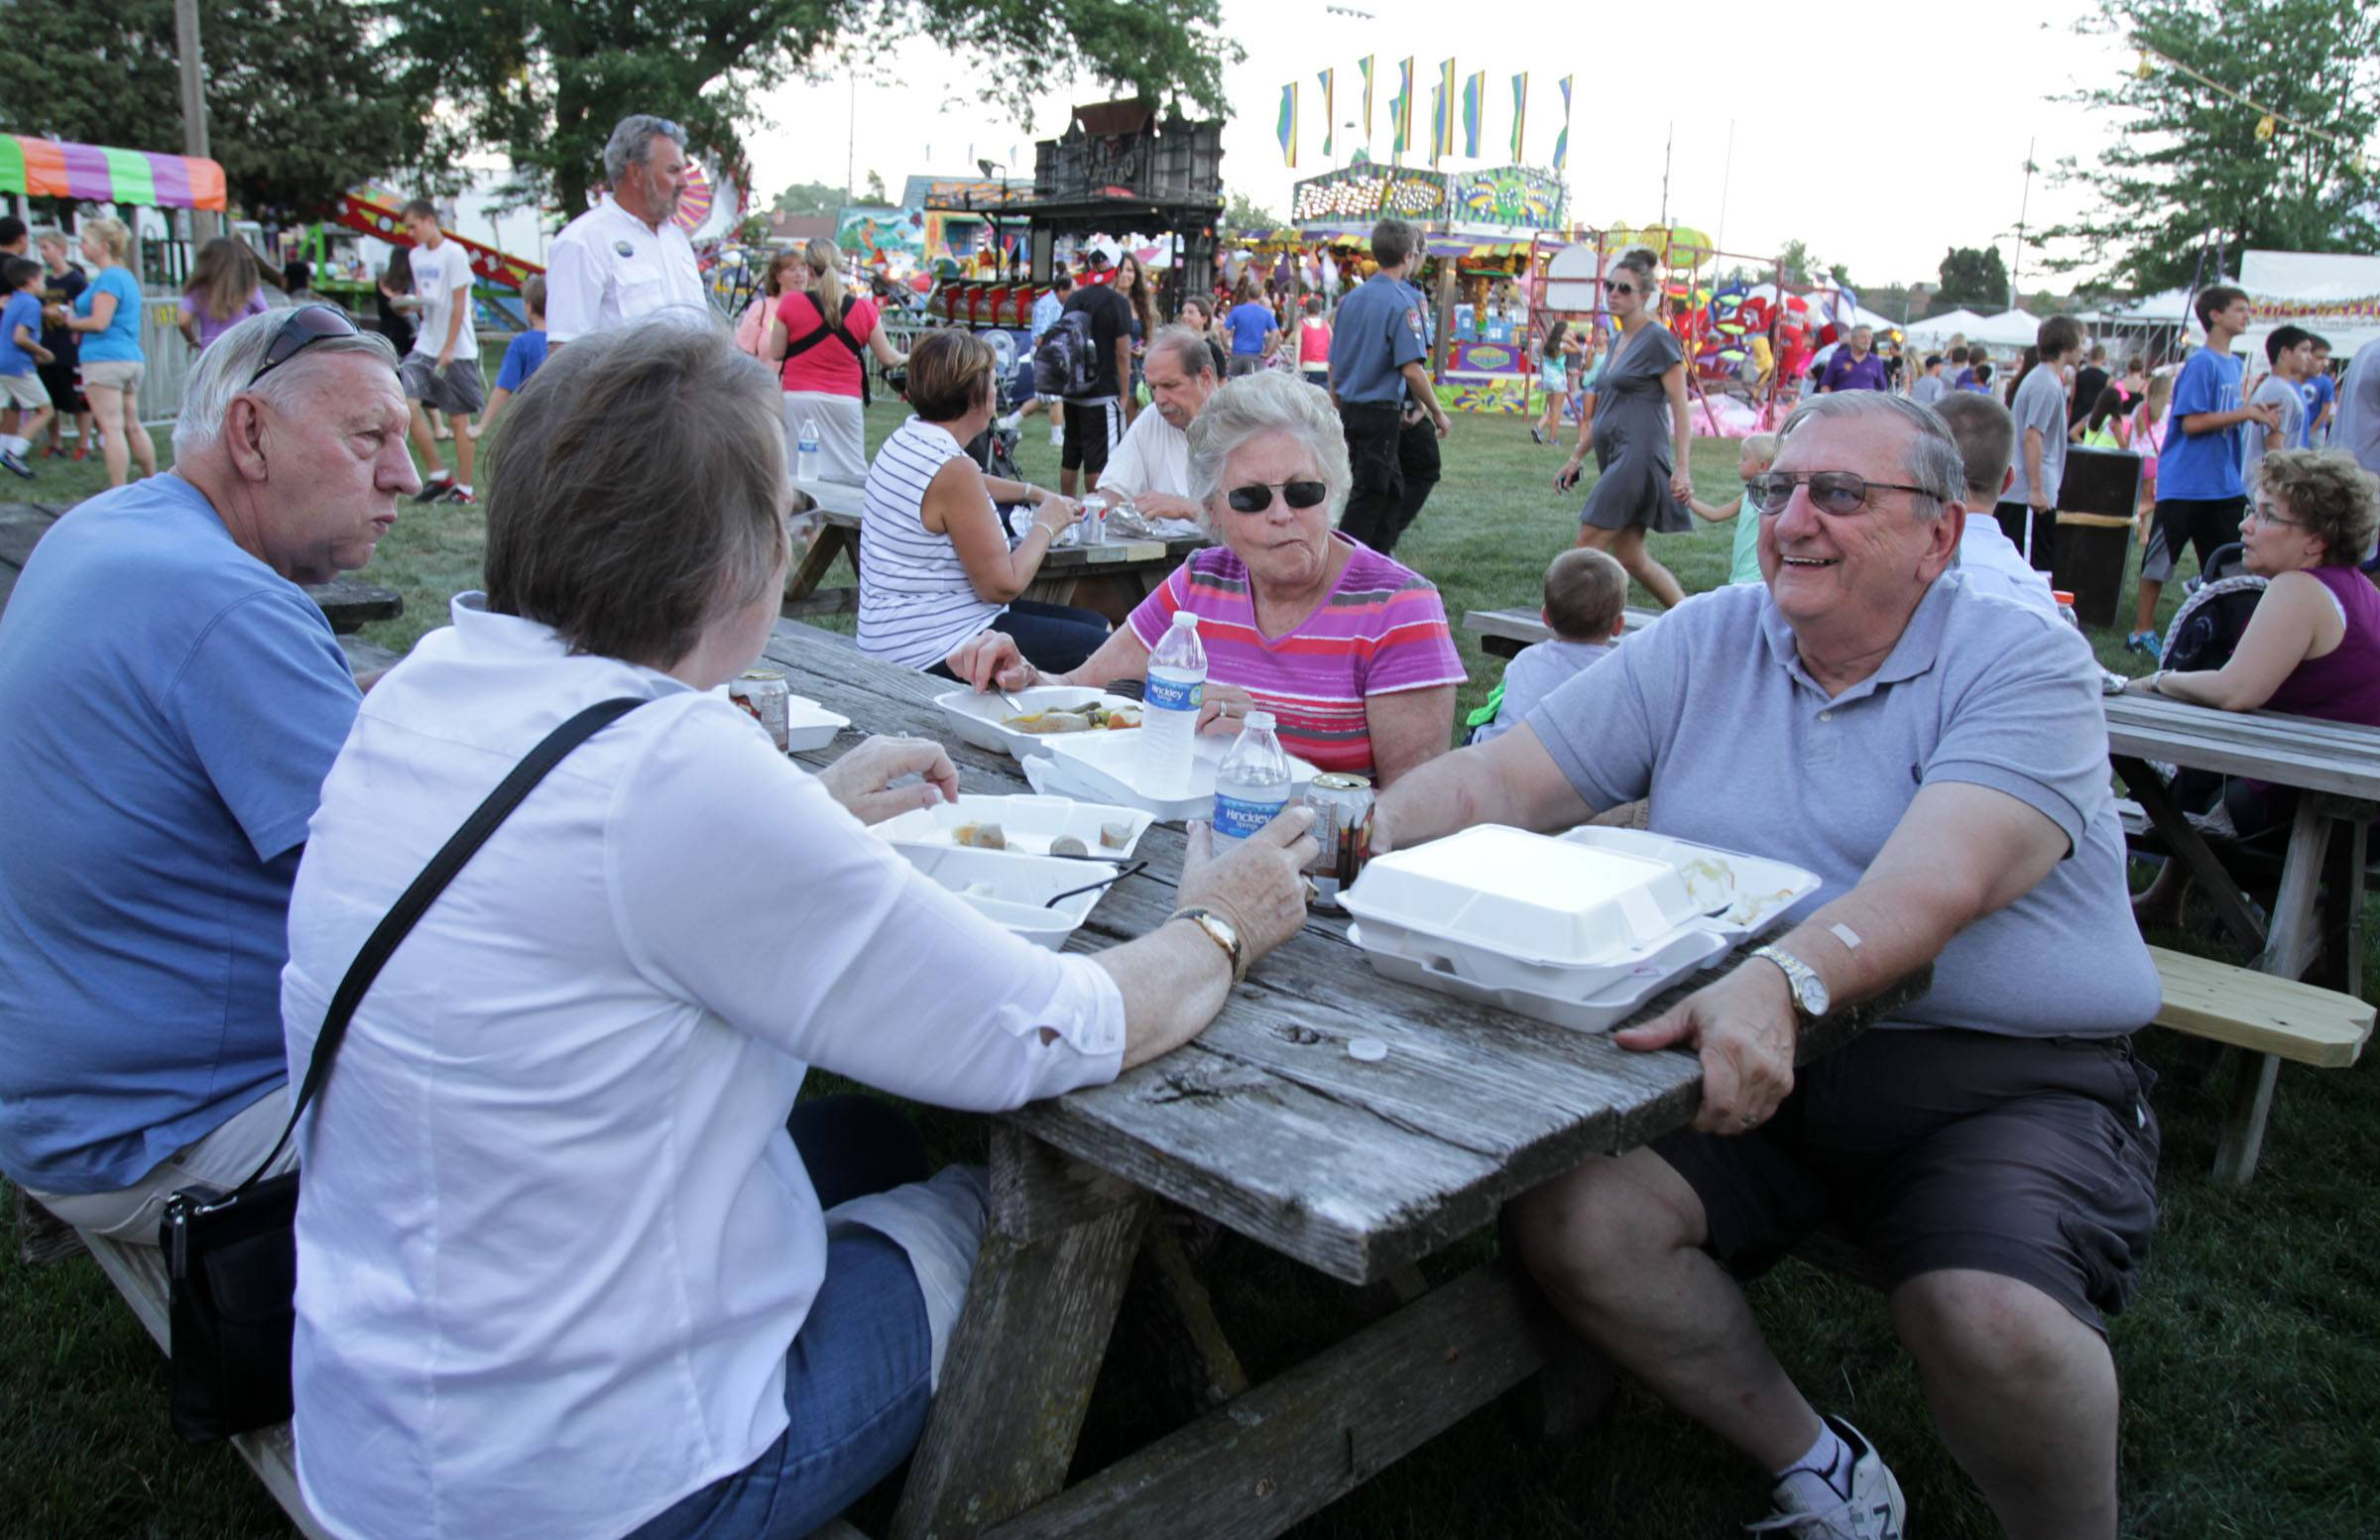 A variety of options await visitors to Alpine Fest, which returns Friday through Sunday, July 18-20, to Lion Fred Blau Park in downtown Lake Zurich.